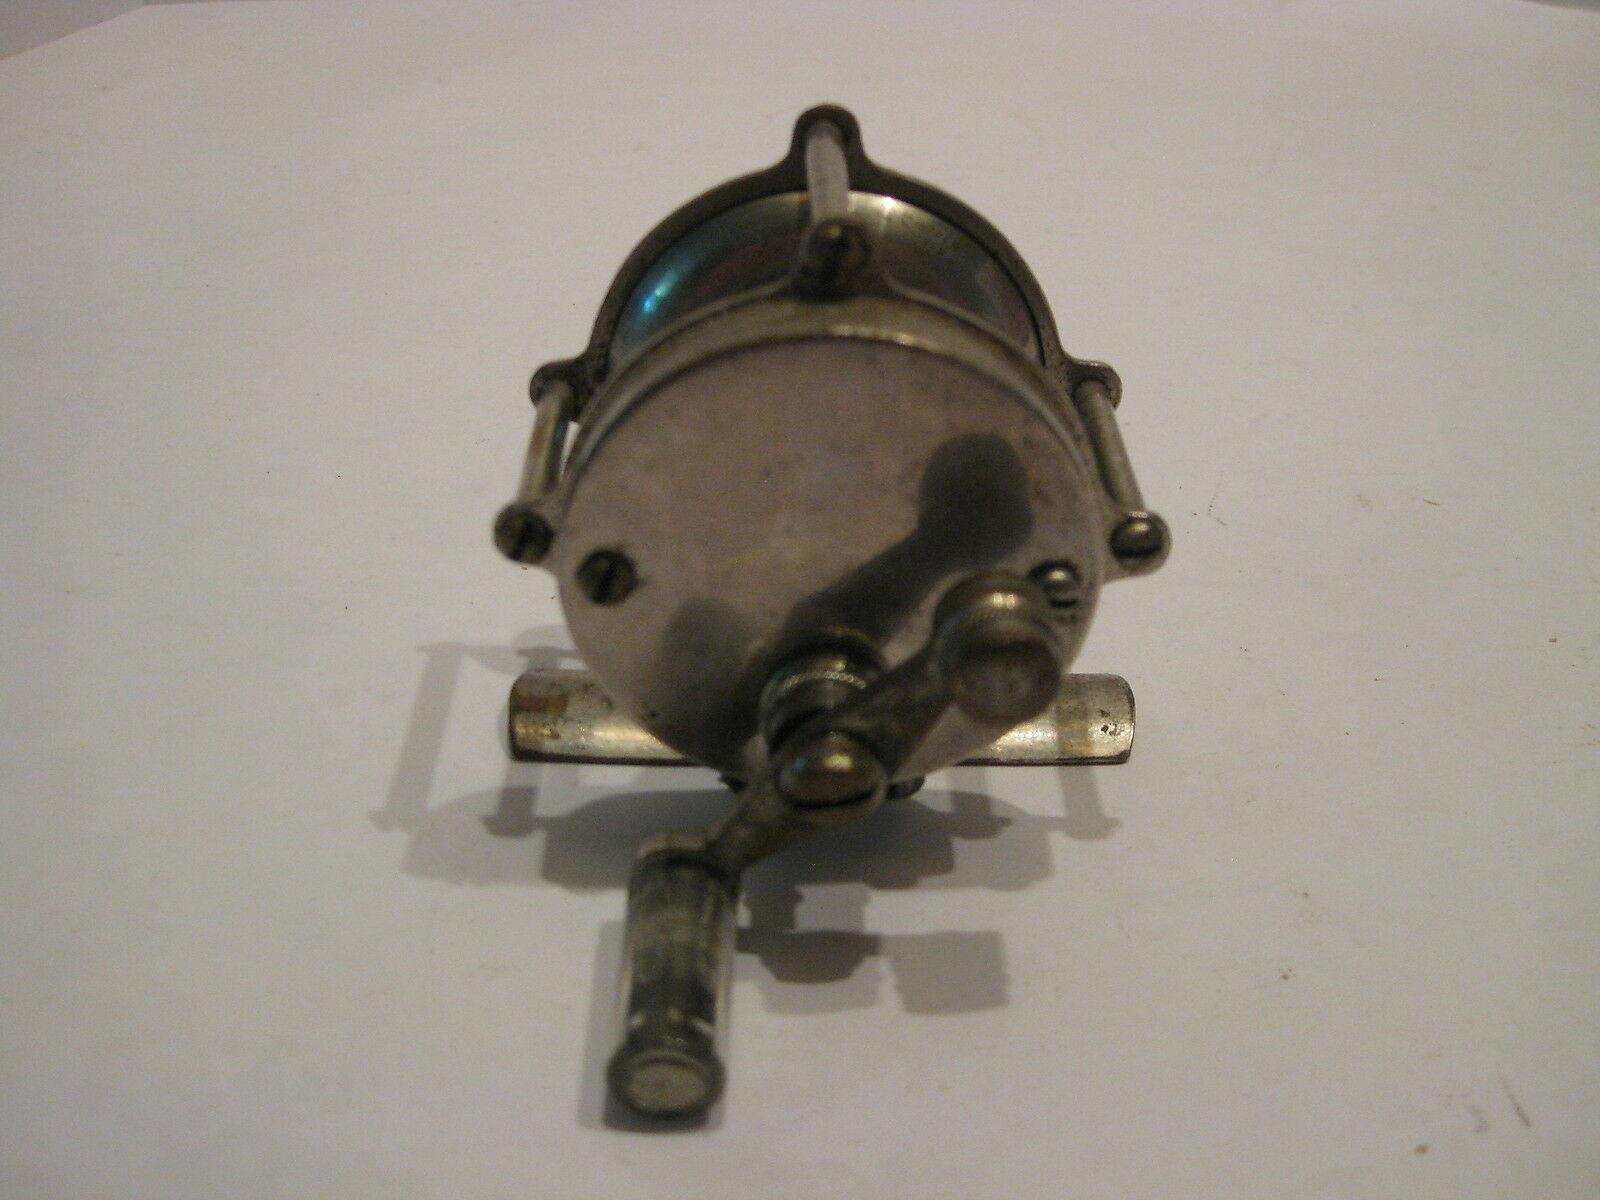 Vintage Level Winding Fishing Reel no markings works properly